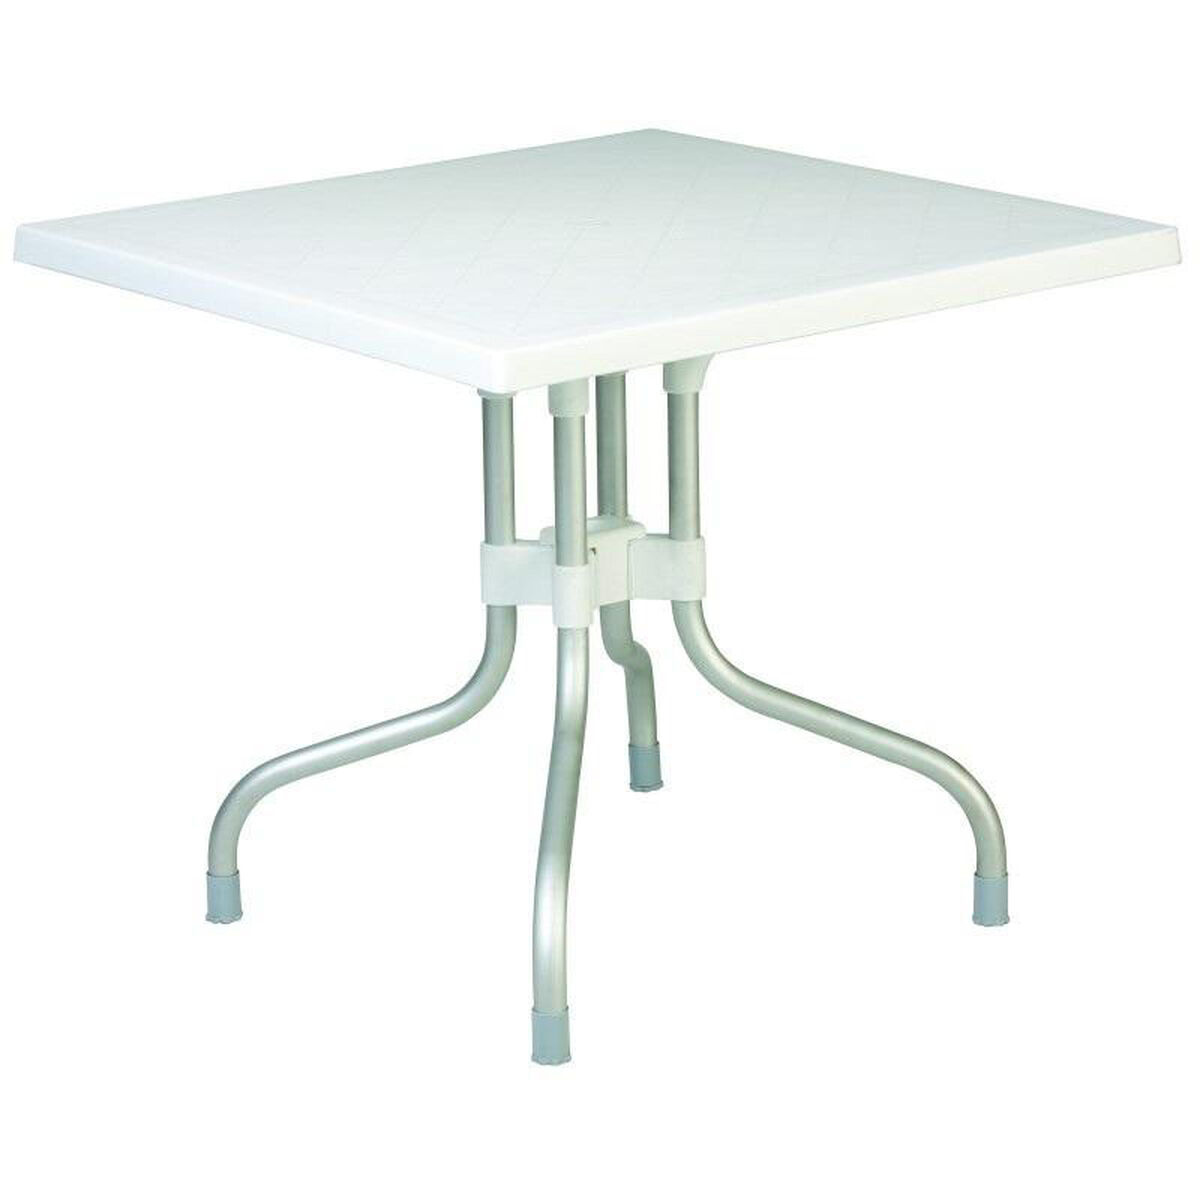 Our Forza Resin Outdoor Folding 31 Square Dining Table With Aluminum Legs White